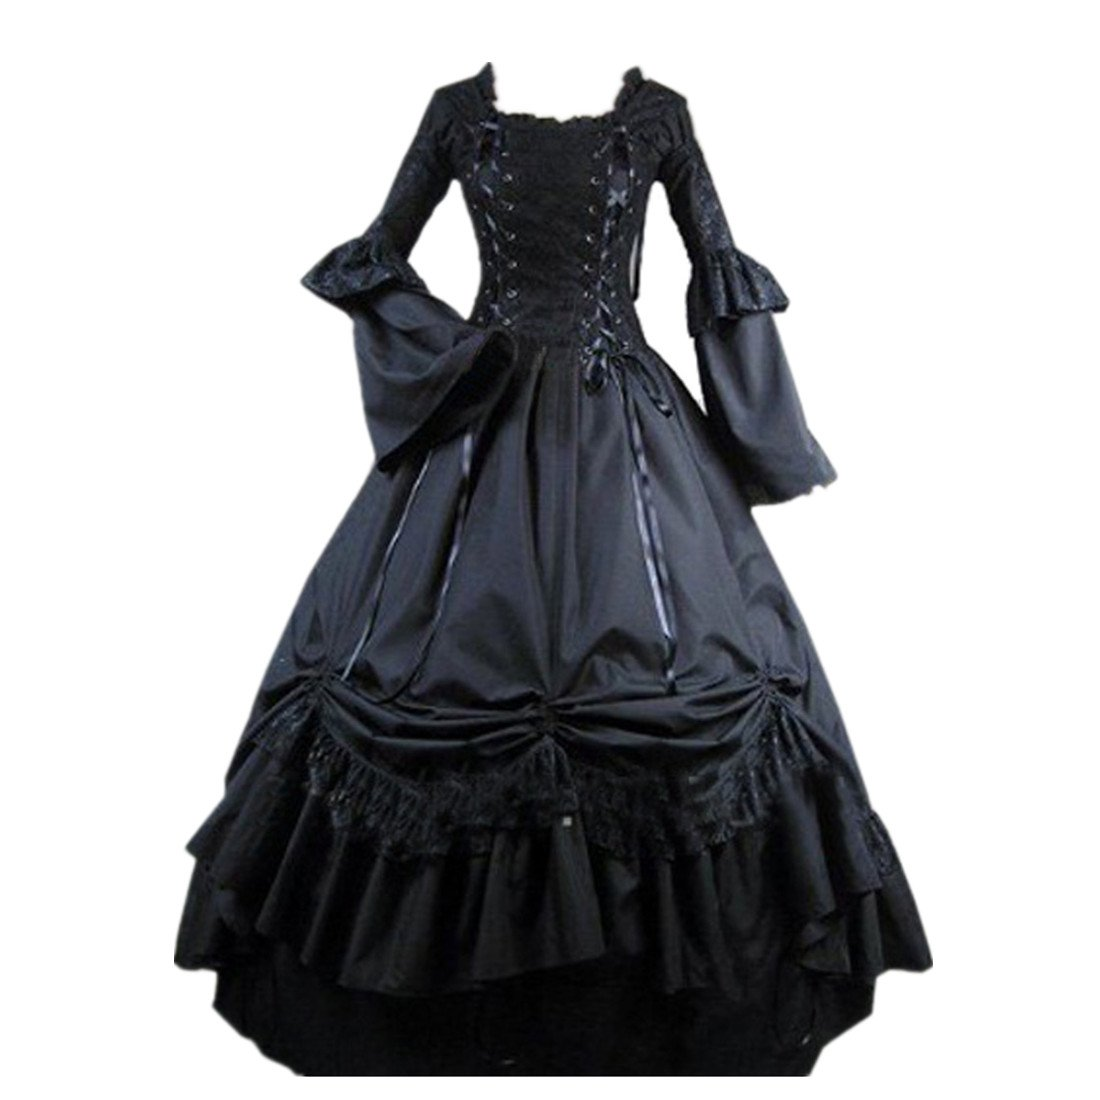 Cozy Age Women's Long Sleeves Lace Bandage Square Collar Victorian Dress